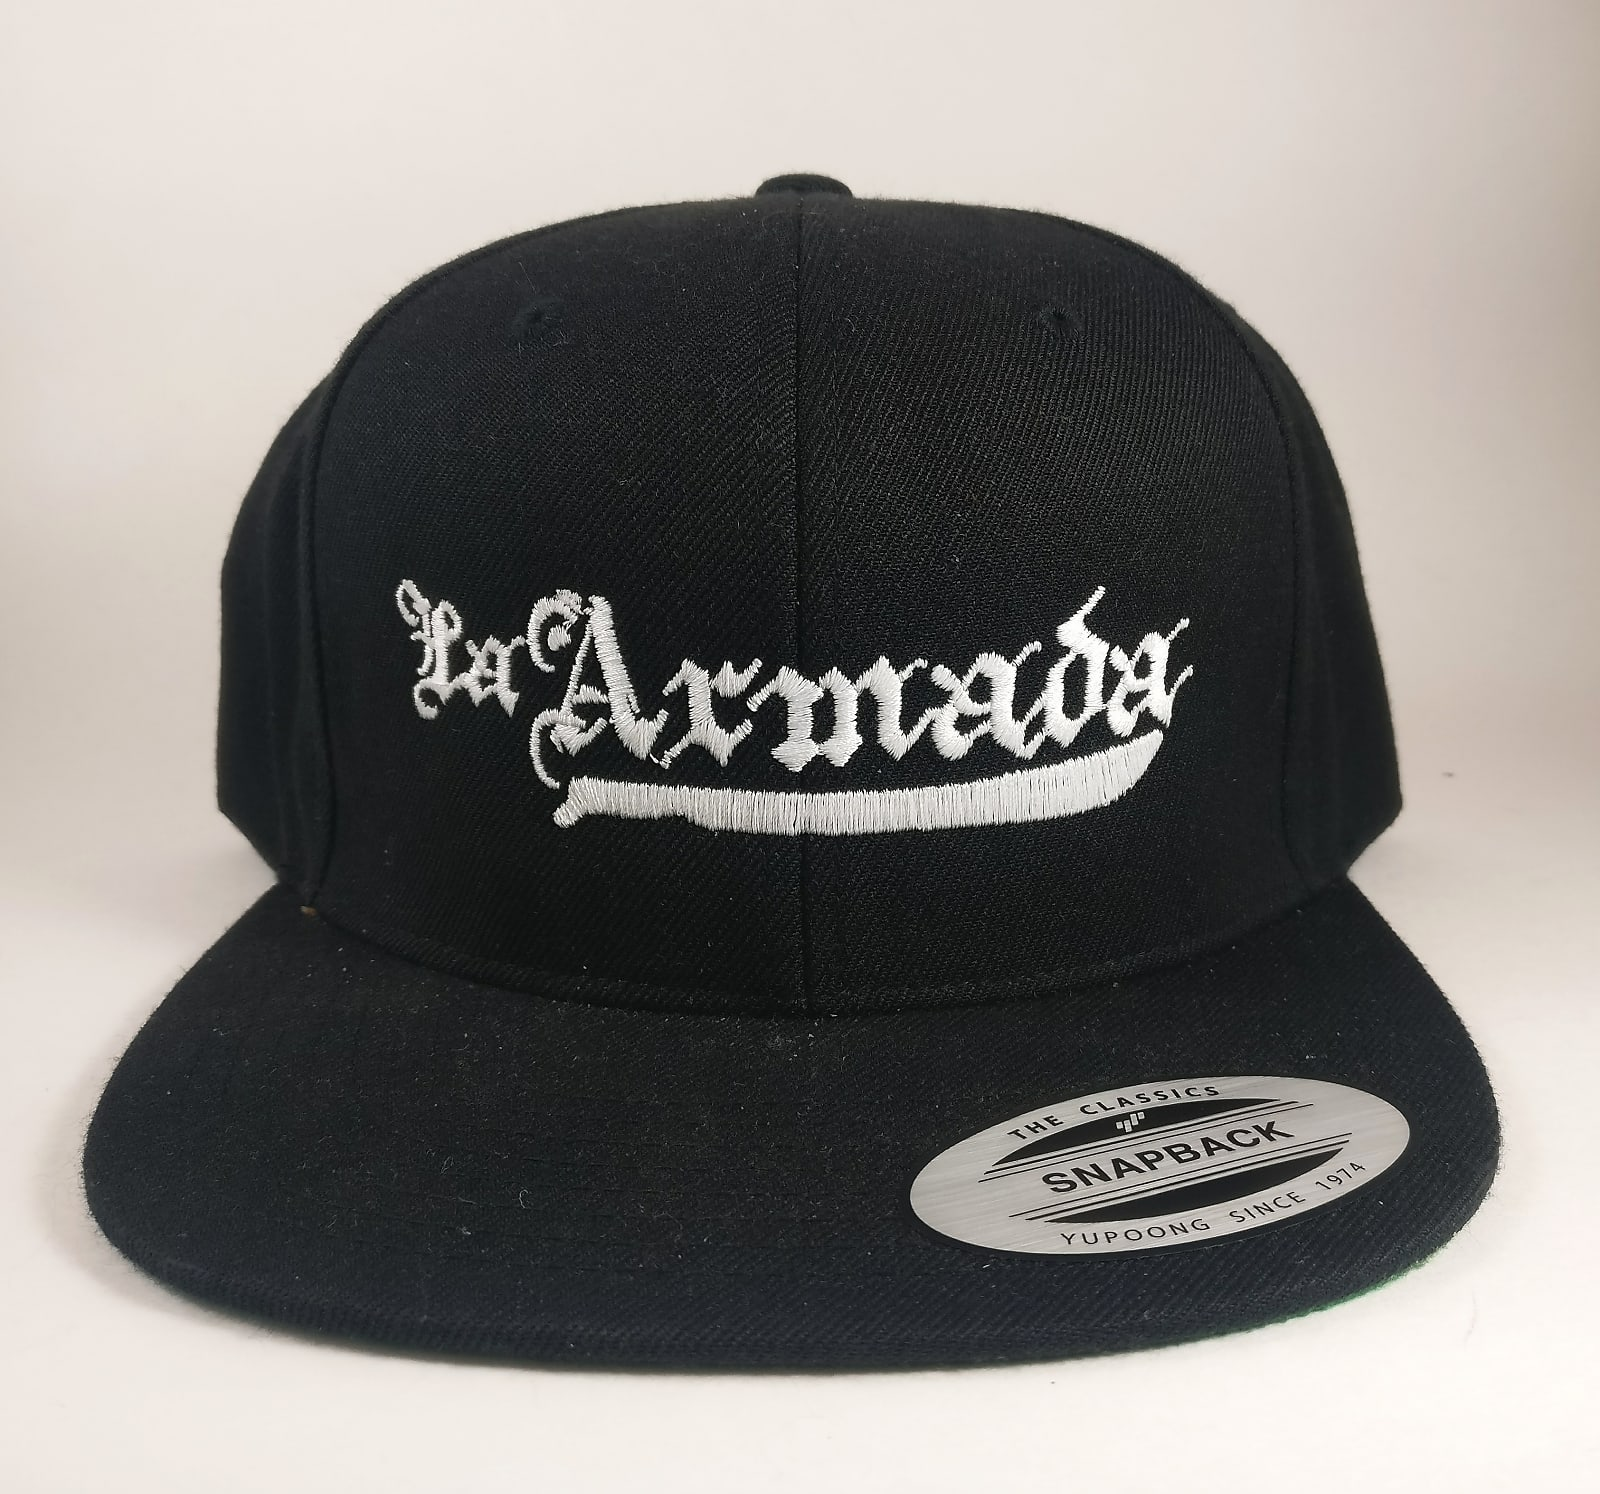 La Armada Adjustable Hat (Black)